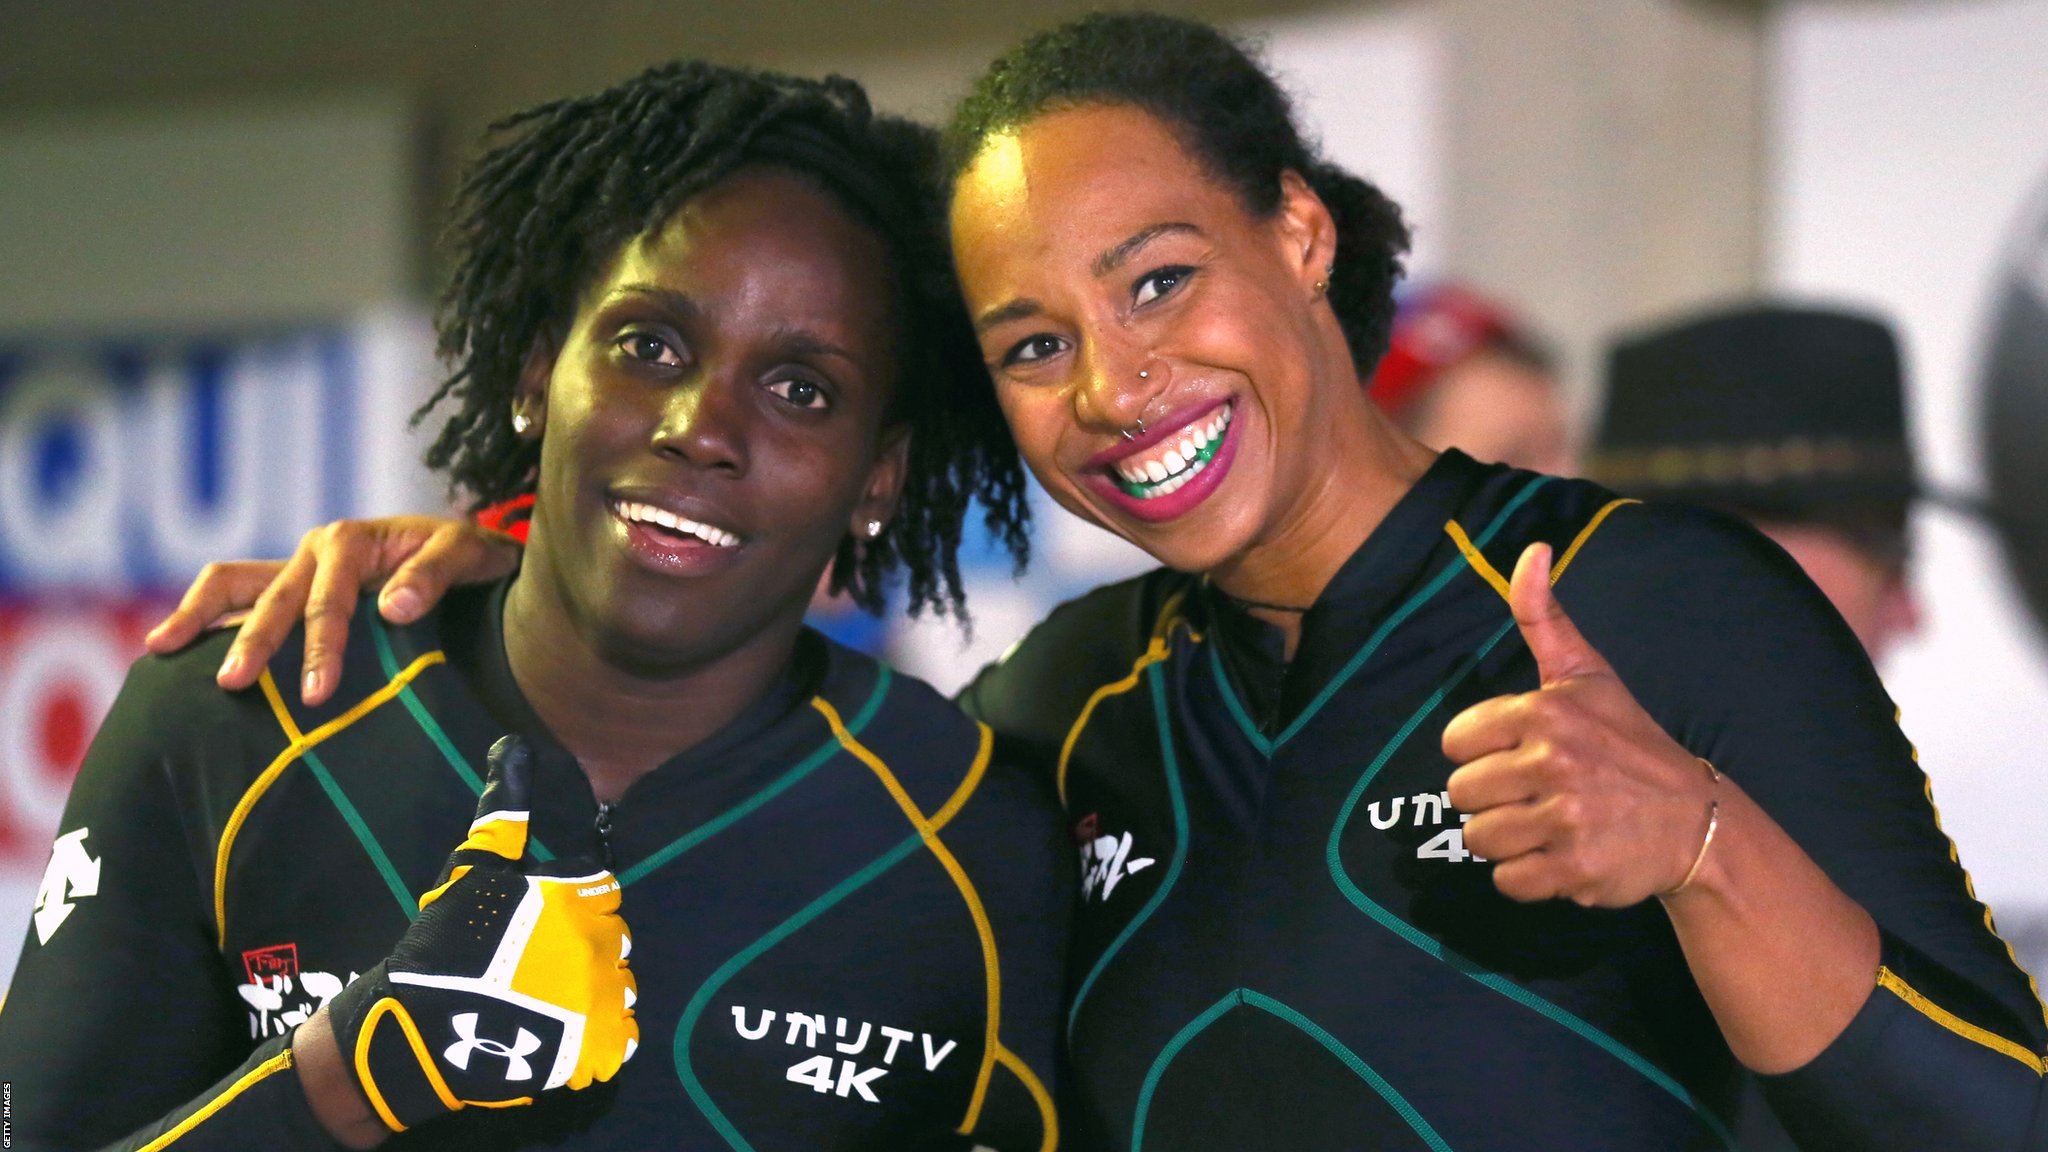 Winter Olympics: Beer producer 'donates' sled to Jamaica women's bobsleigh team